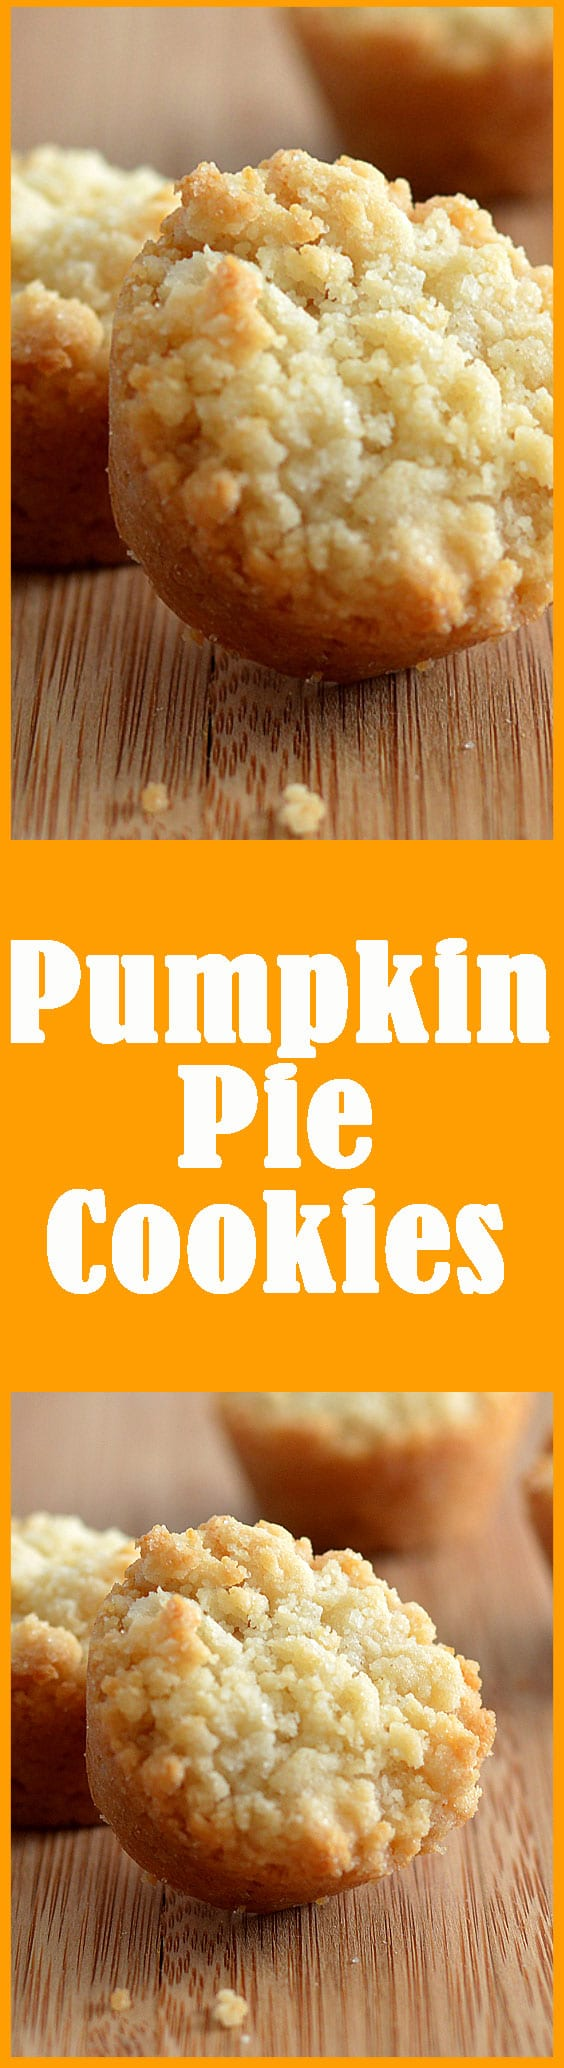 pumpkin-pie-cookies